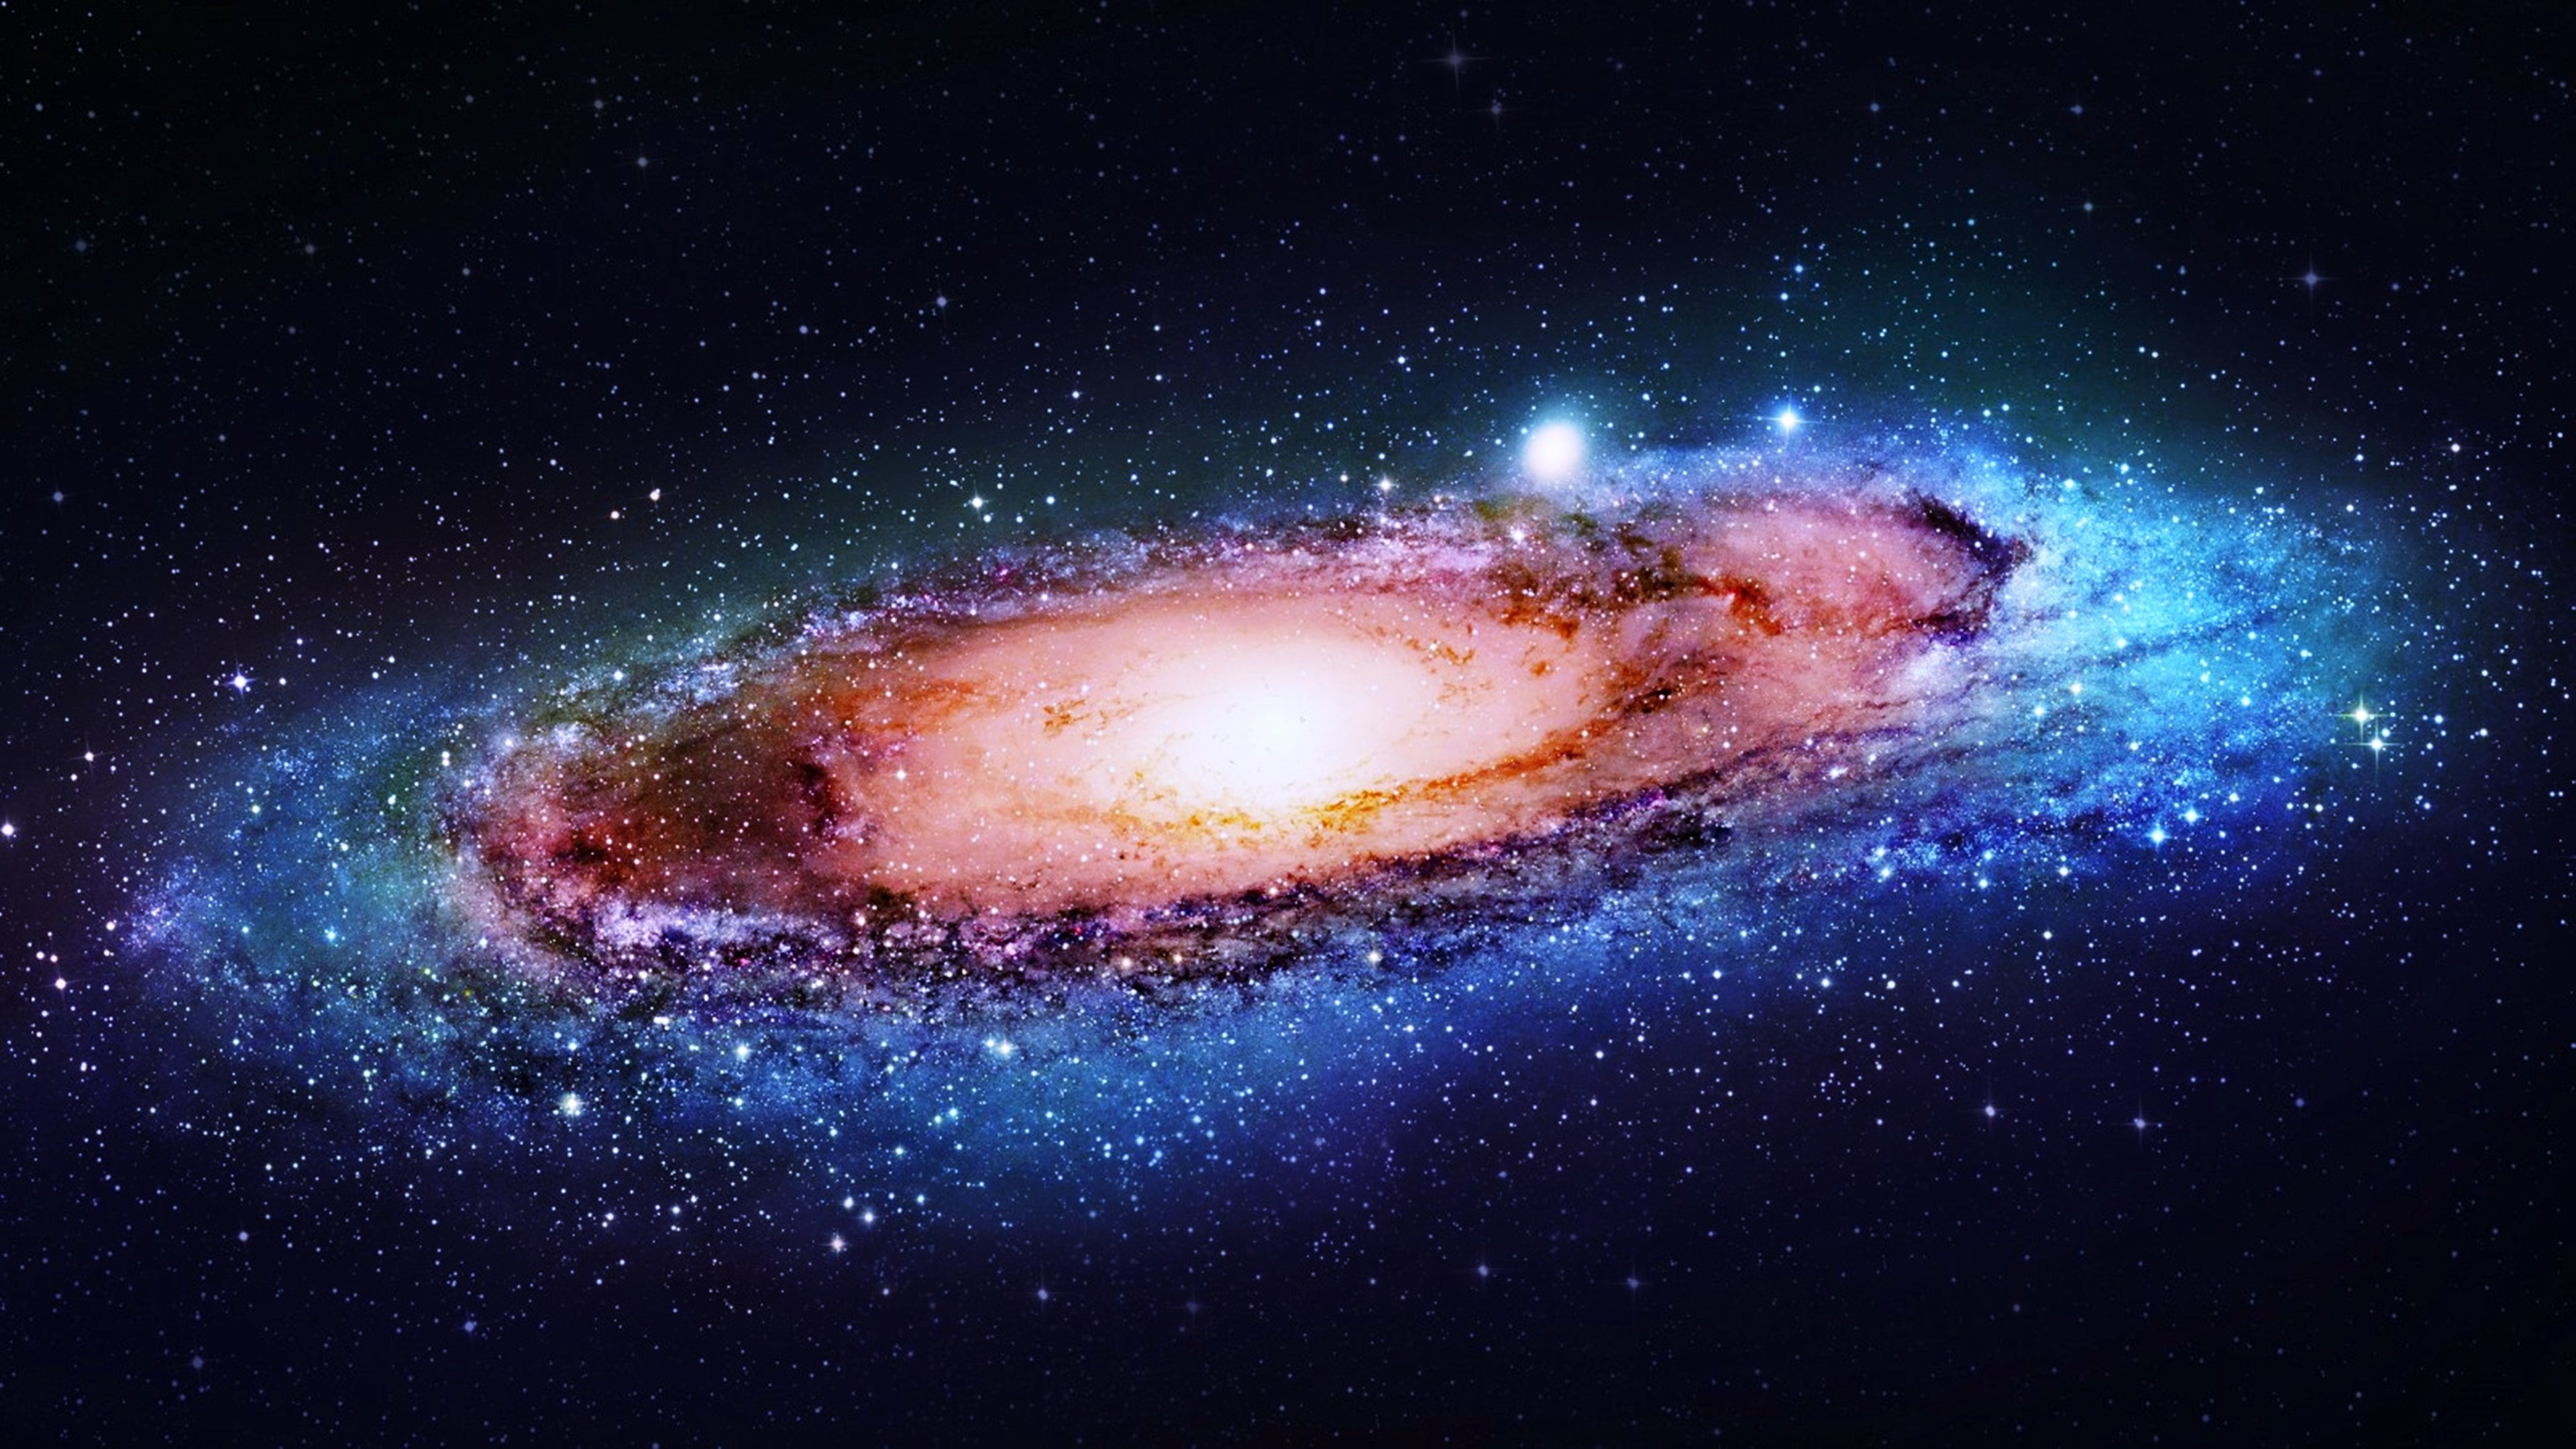 colors   Dark   galaxy   space   stars   universe wallpaper background 3840x2160